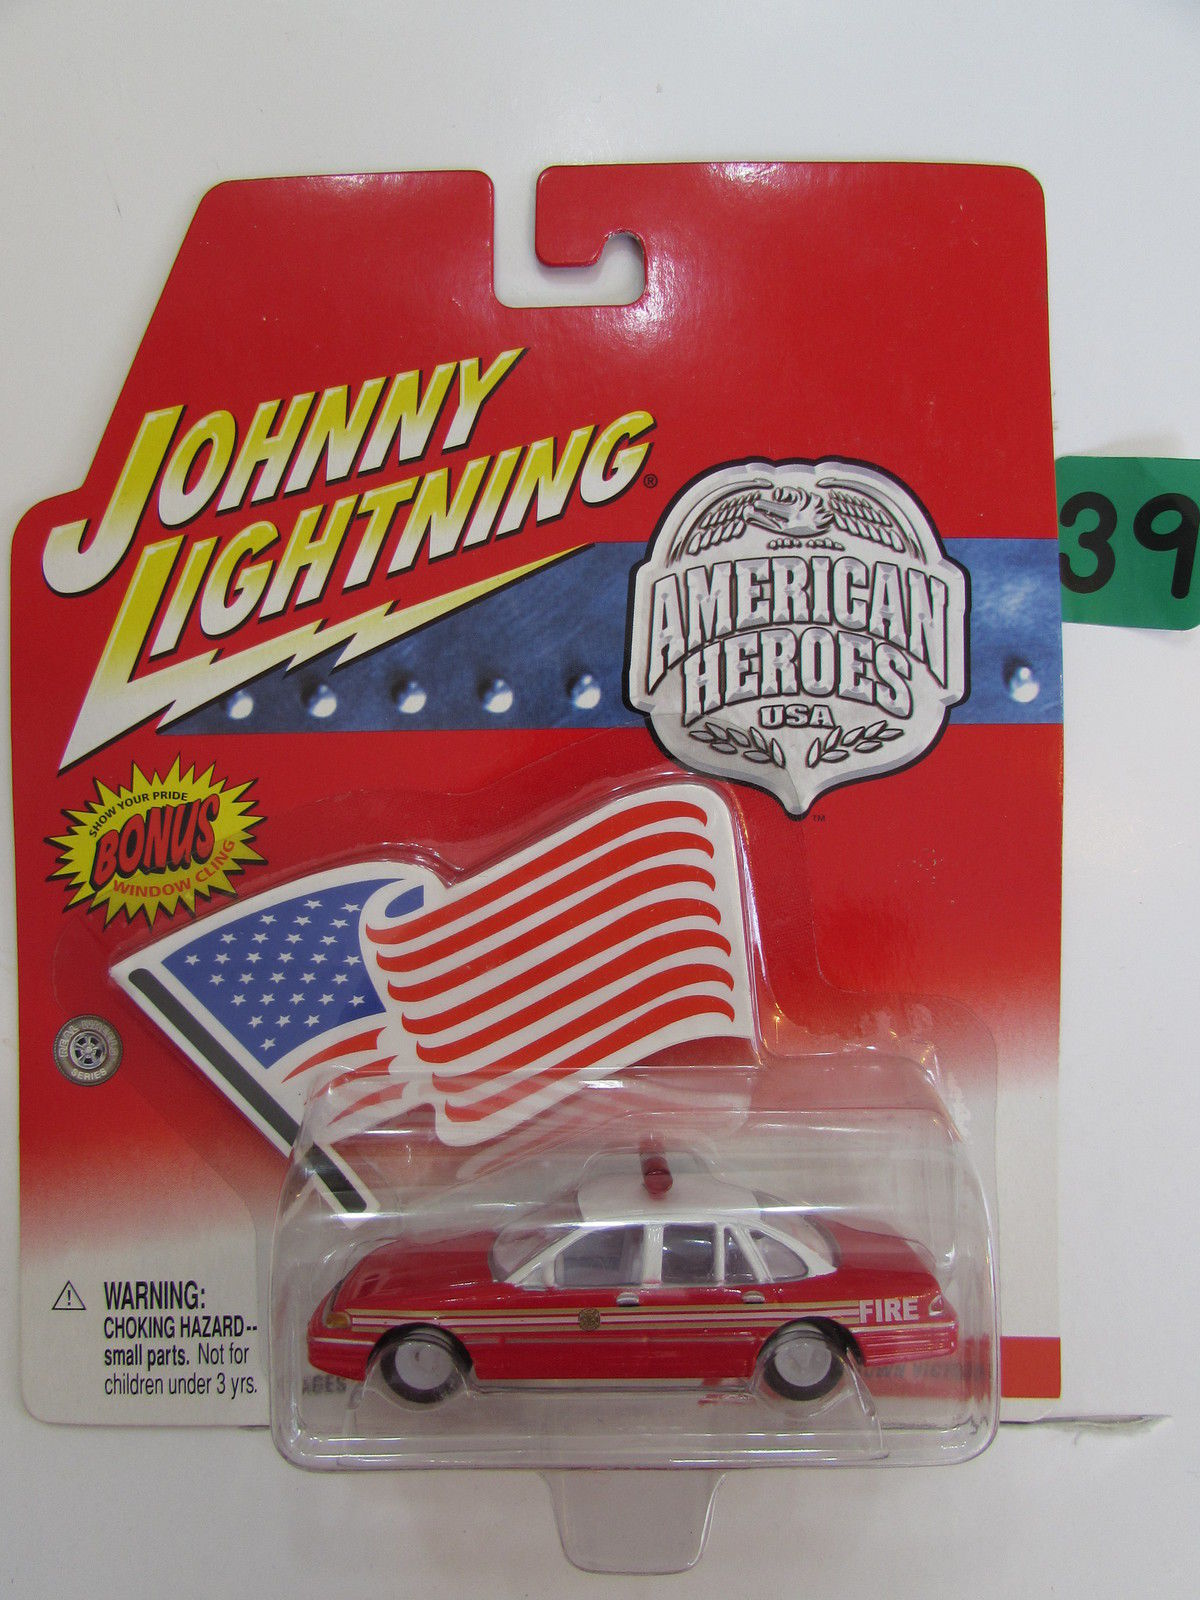 JOHNNY LIGHTNING AMERICAN HEROES USA - FIRE CHIEF CROWN VICTORIA WHITE LIGHTNING